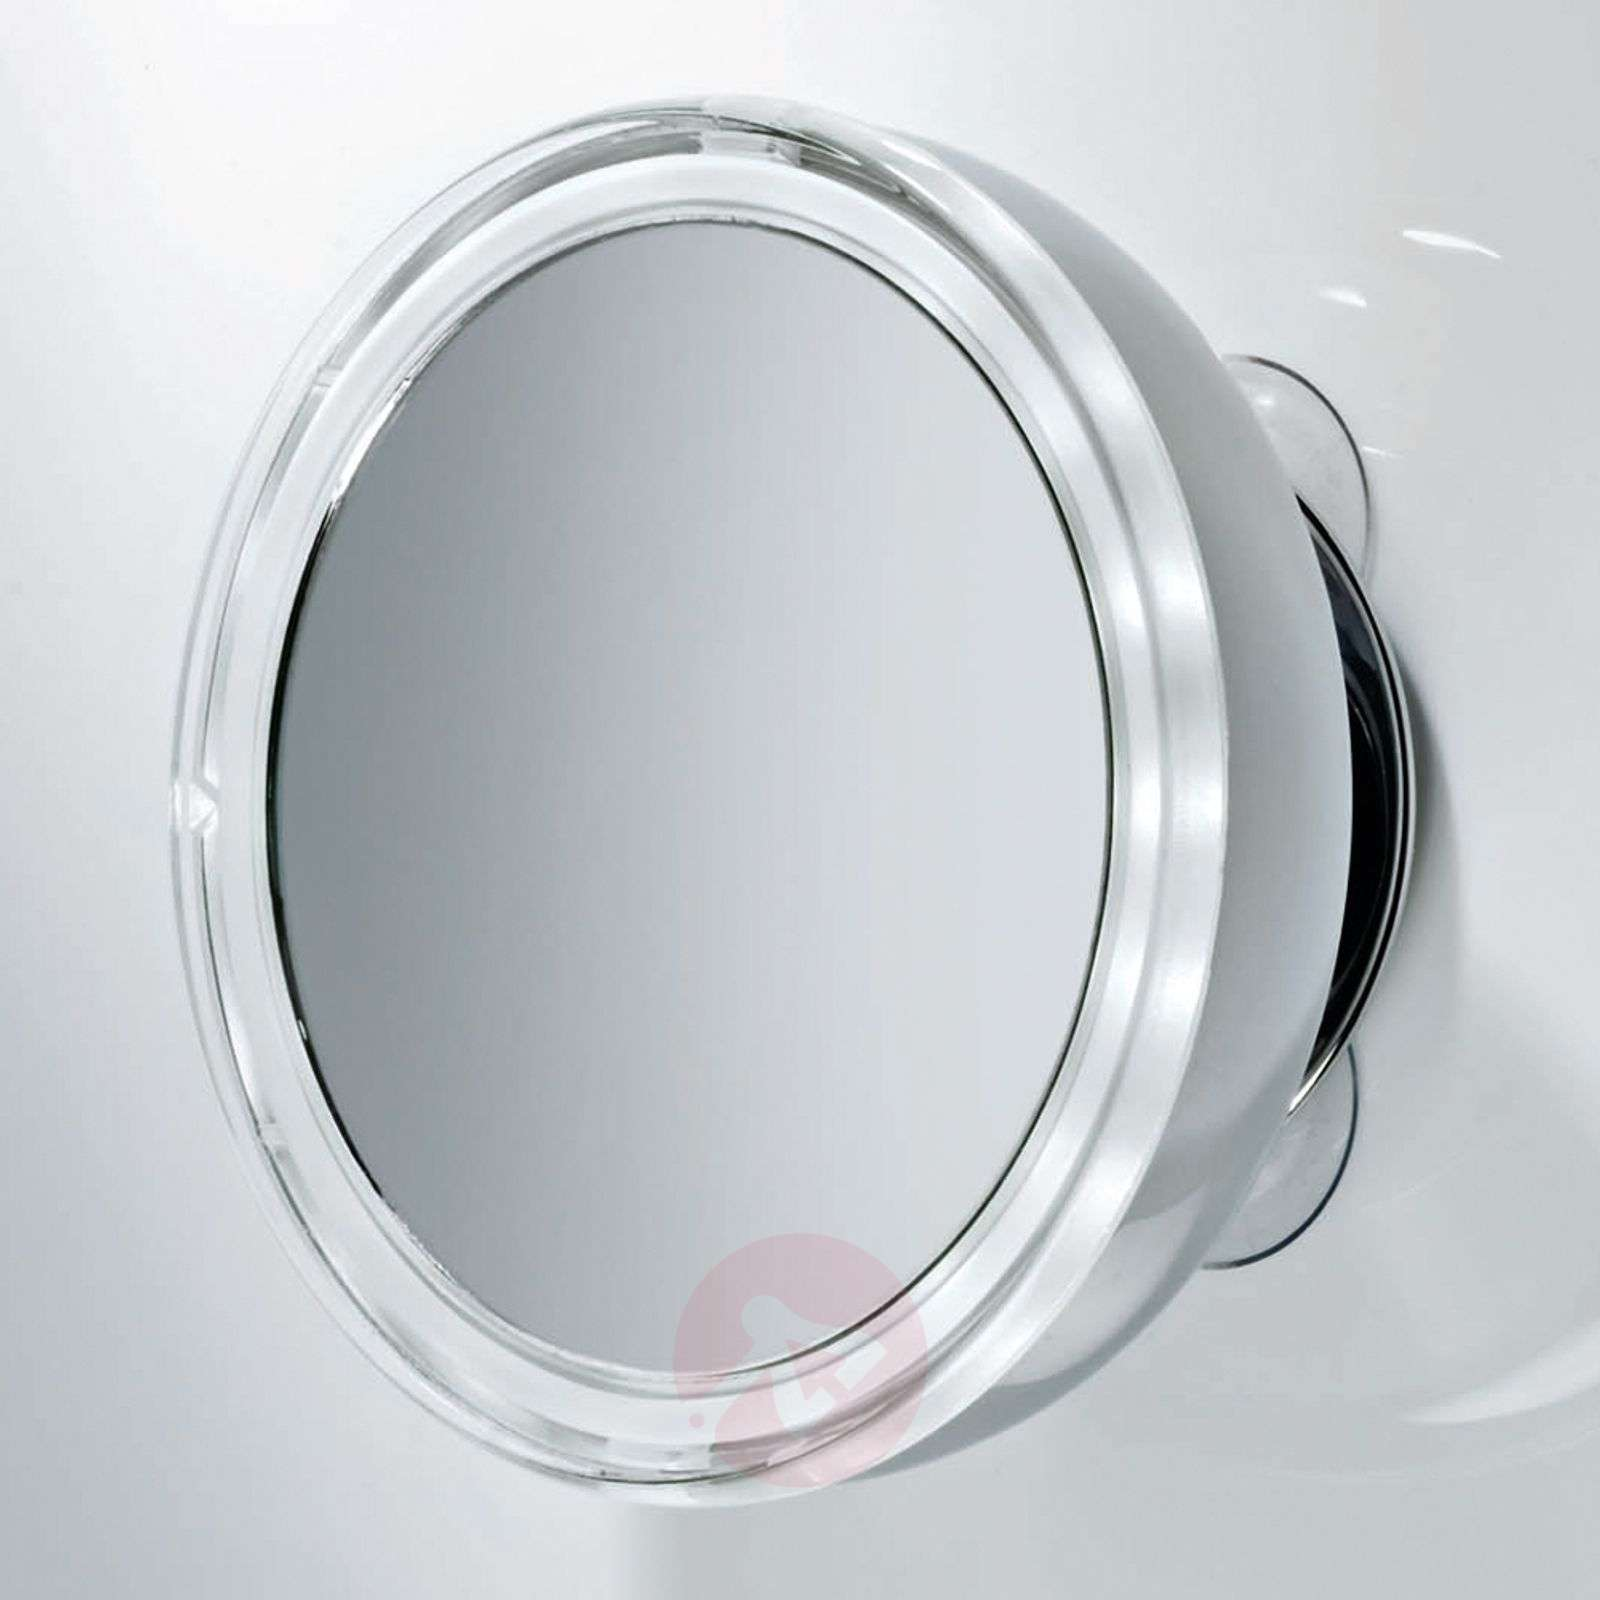 BS 10 illuminated travel mirror-2504360-01